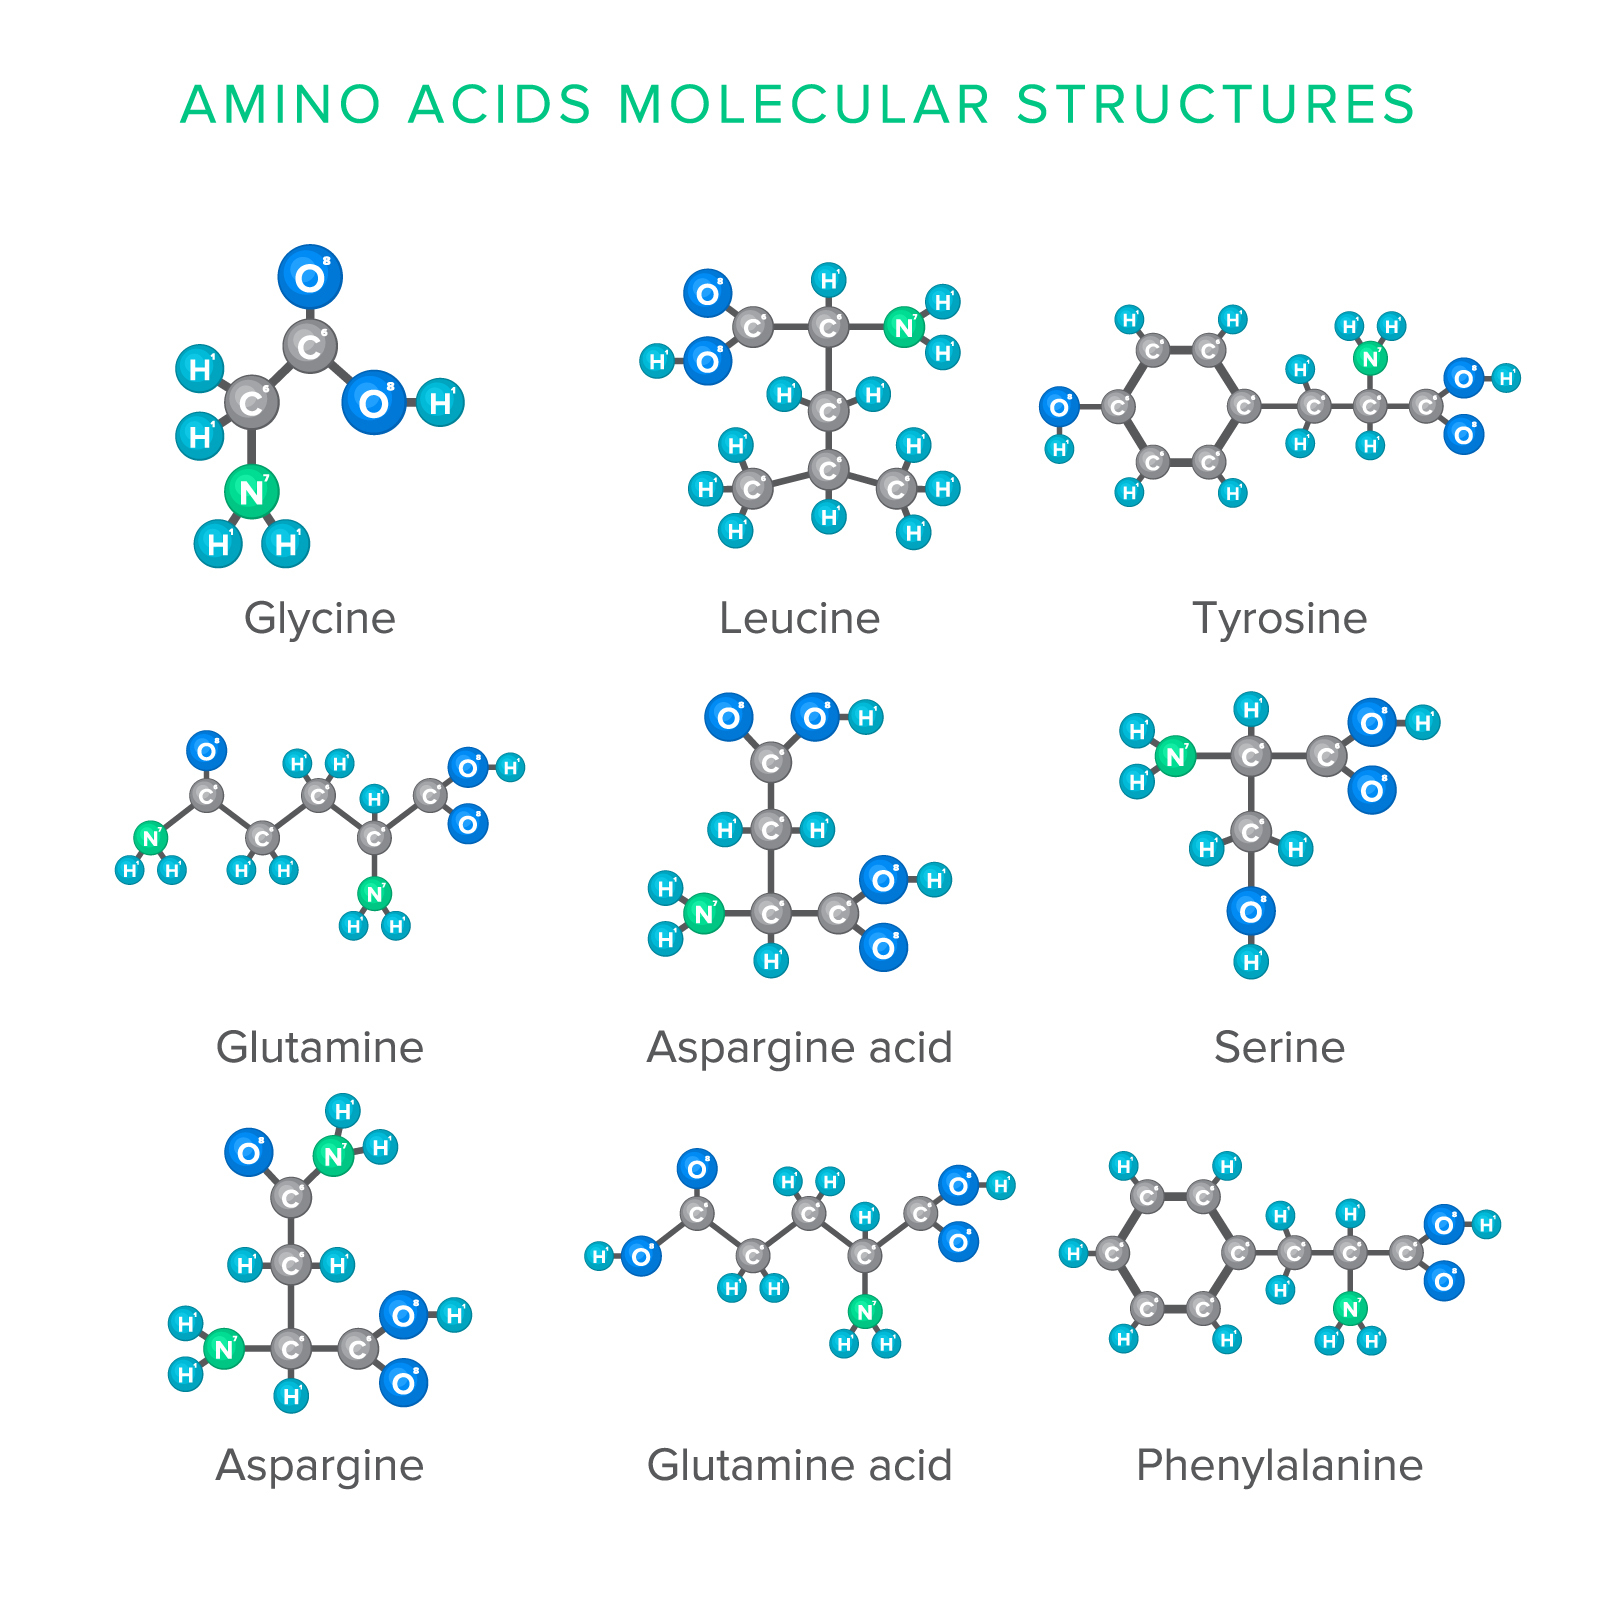 amino acids skin patches image 1